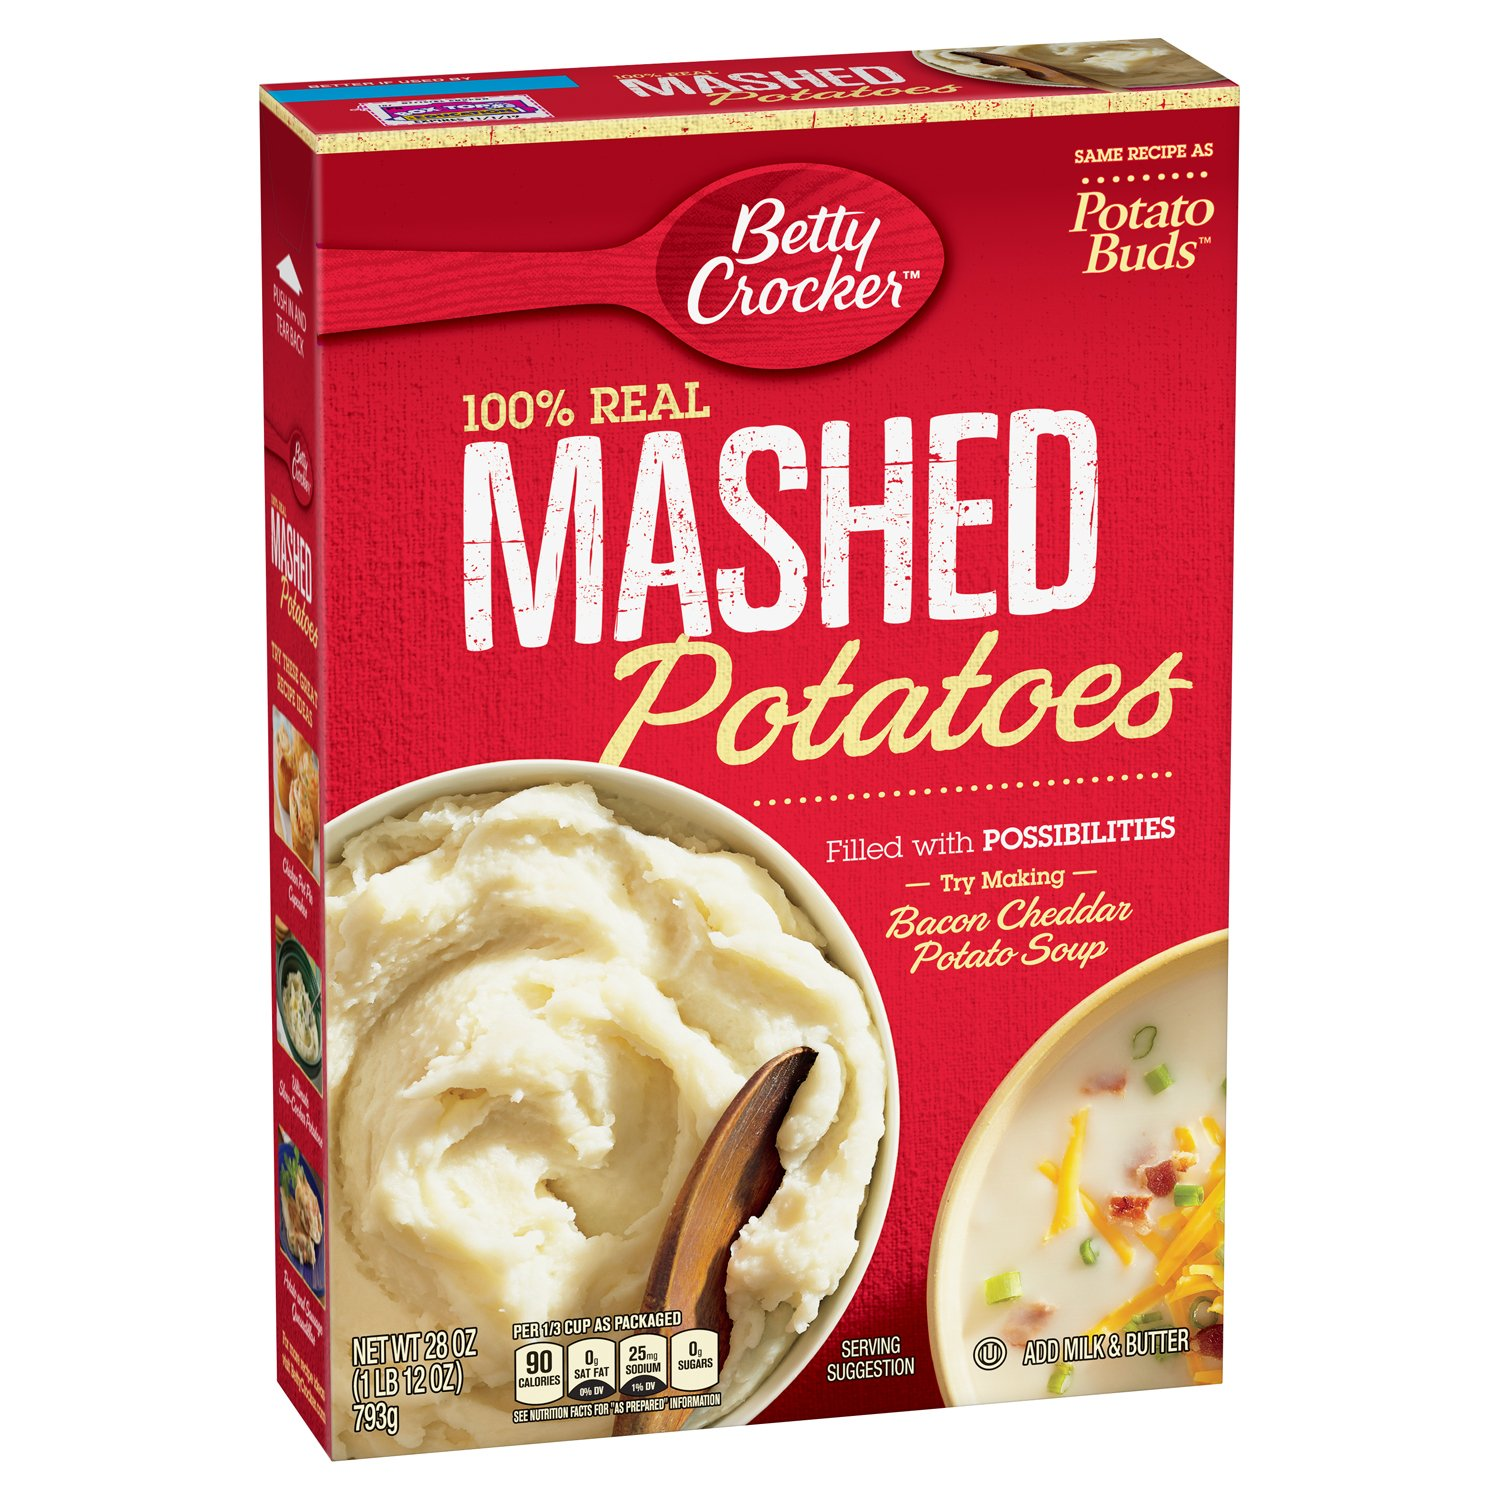 Betty Crocker Instant Mashed Potatoes, 28 Ounce